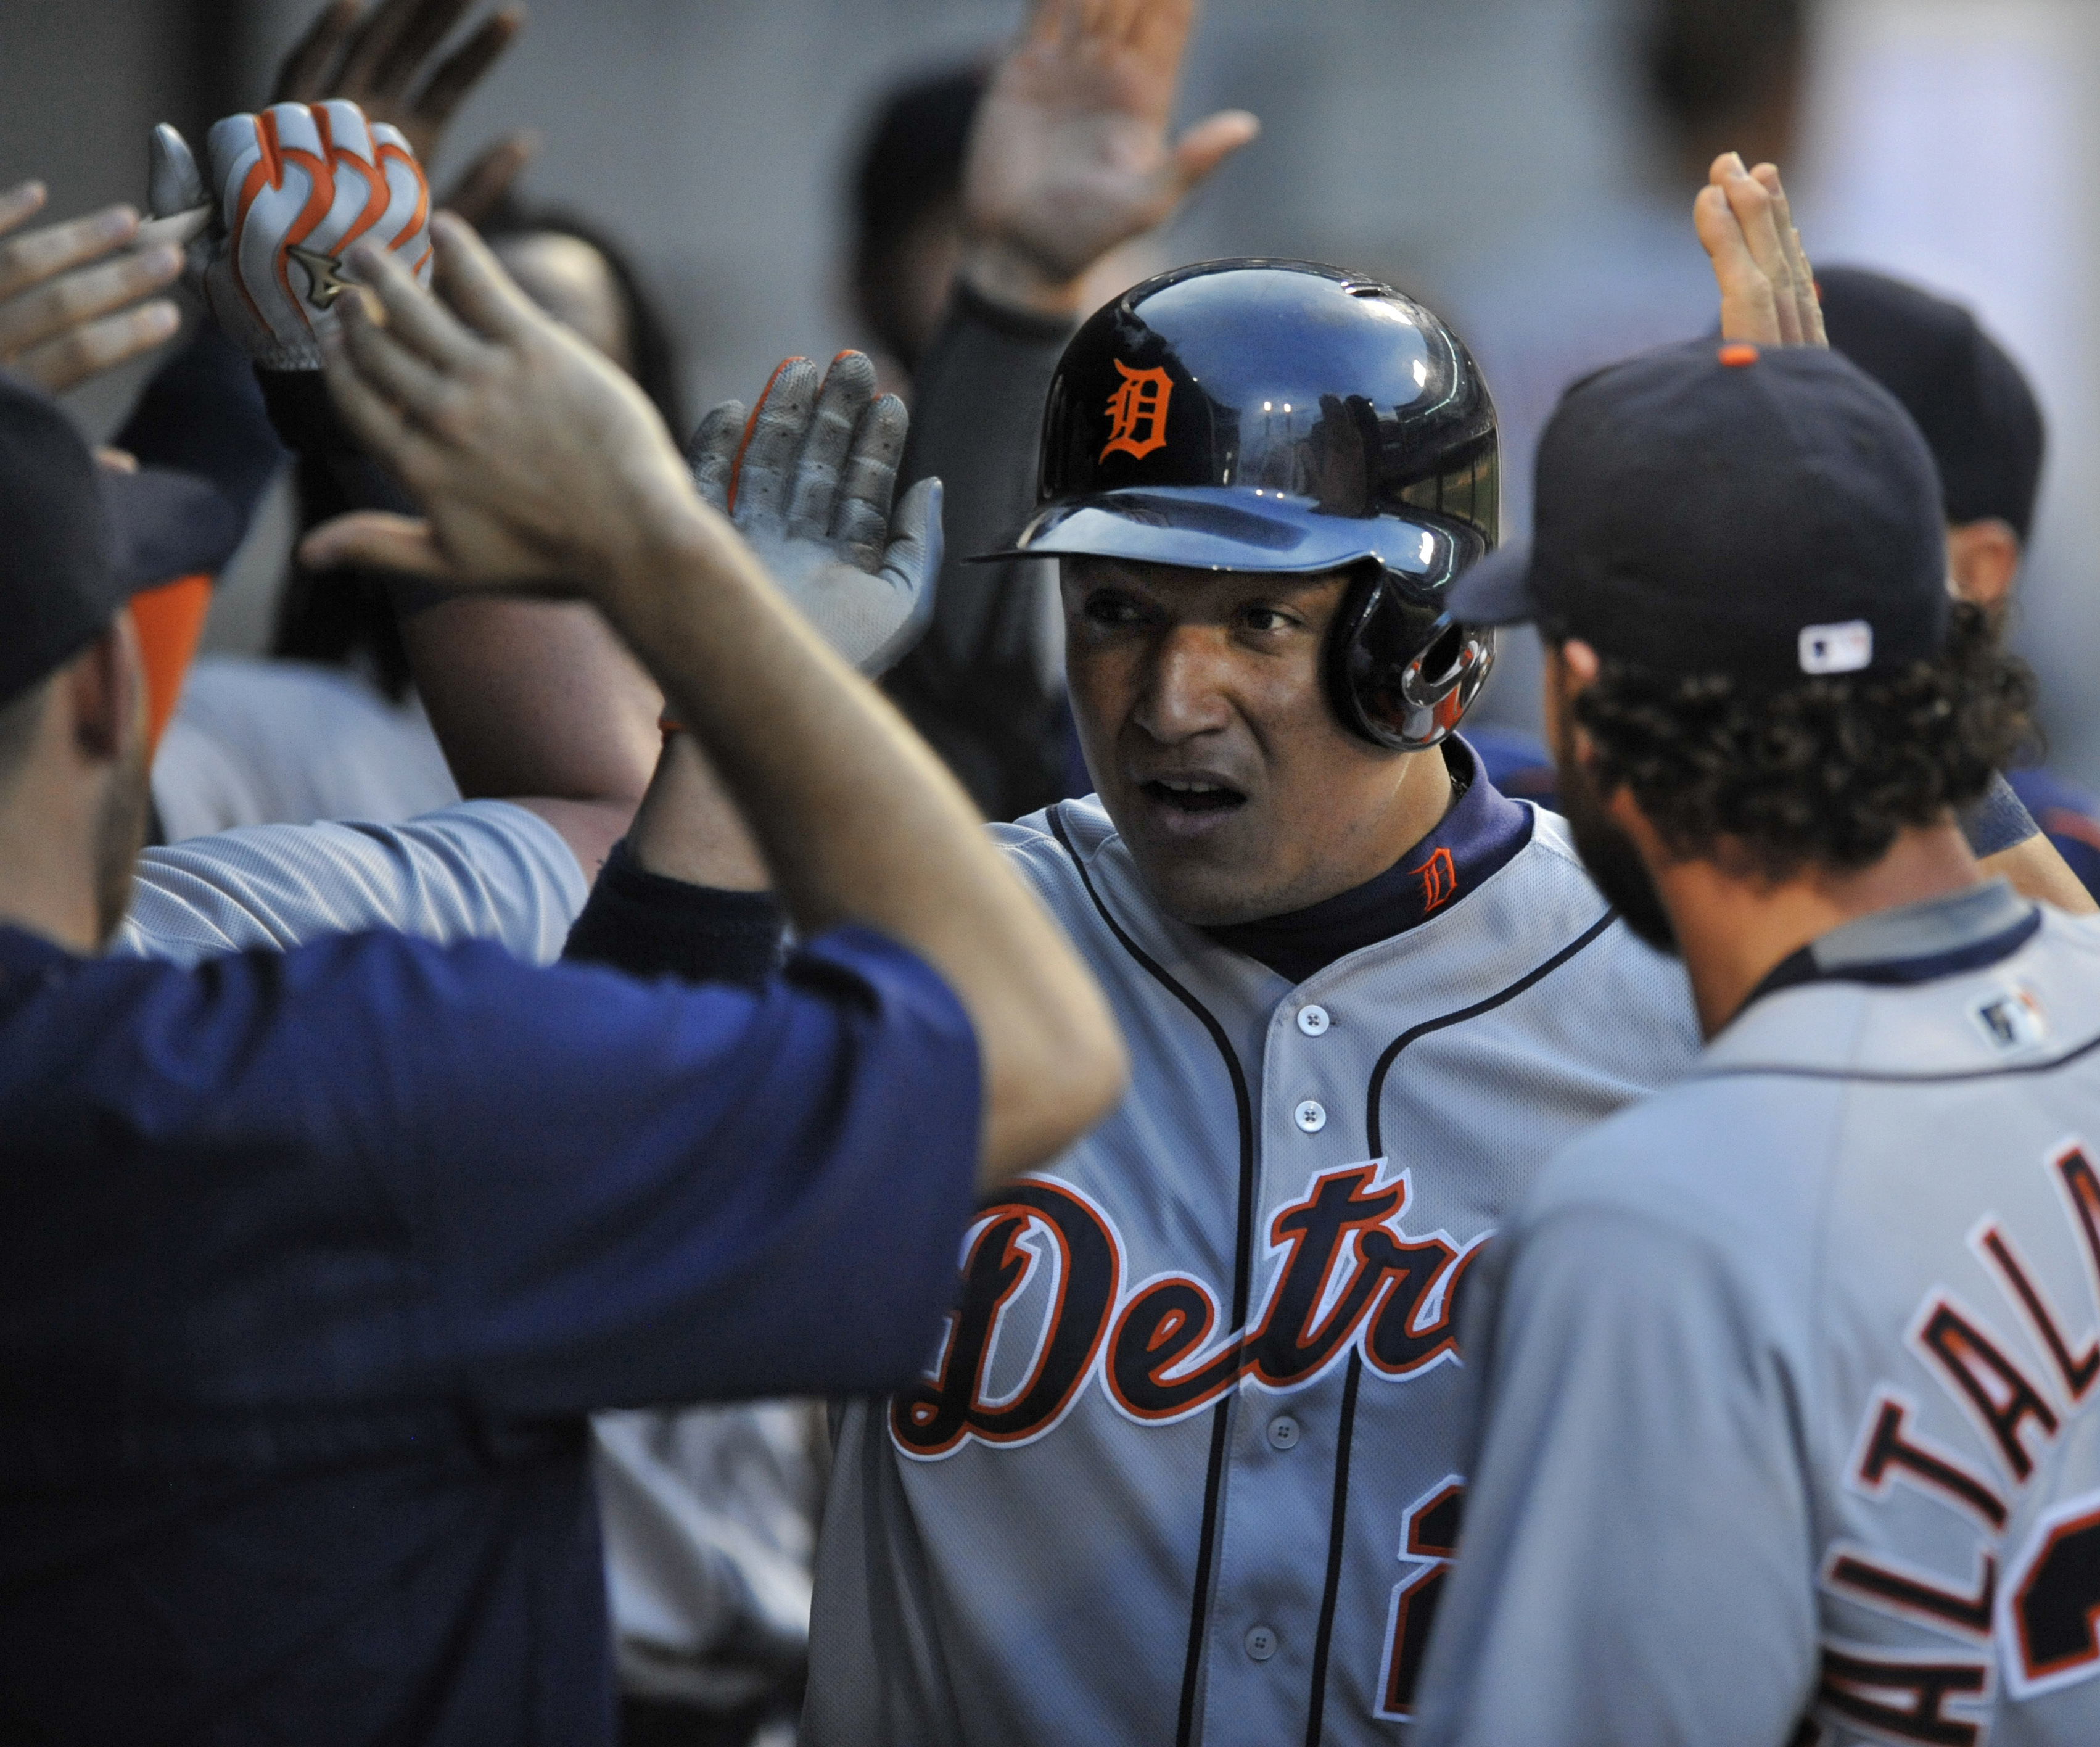 Detroit Tigers' Miguel Cabrera (24) celebrates with teammates in the dugout after scoring on James McCann sacrifice fly during the third inning of a baseball game against the Chicago White Sox Tuesday, June 14, 2016, in Chicago. (AP Photo/Paul Beaty)